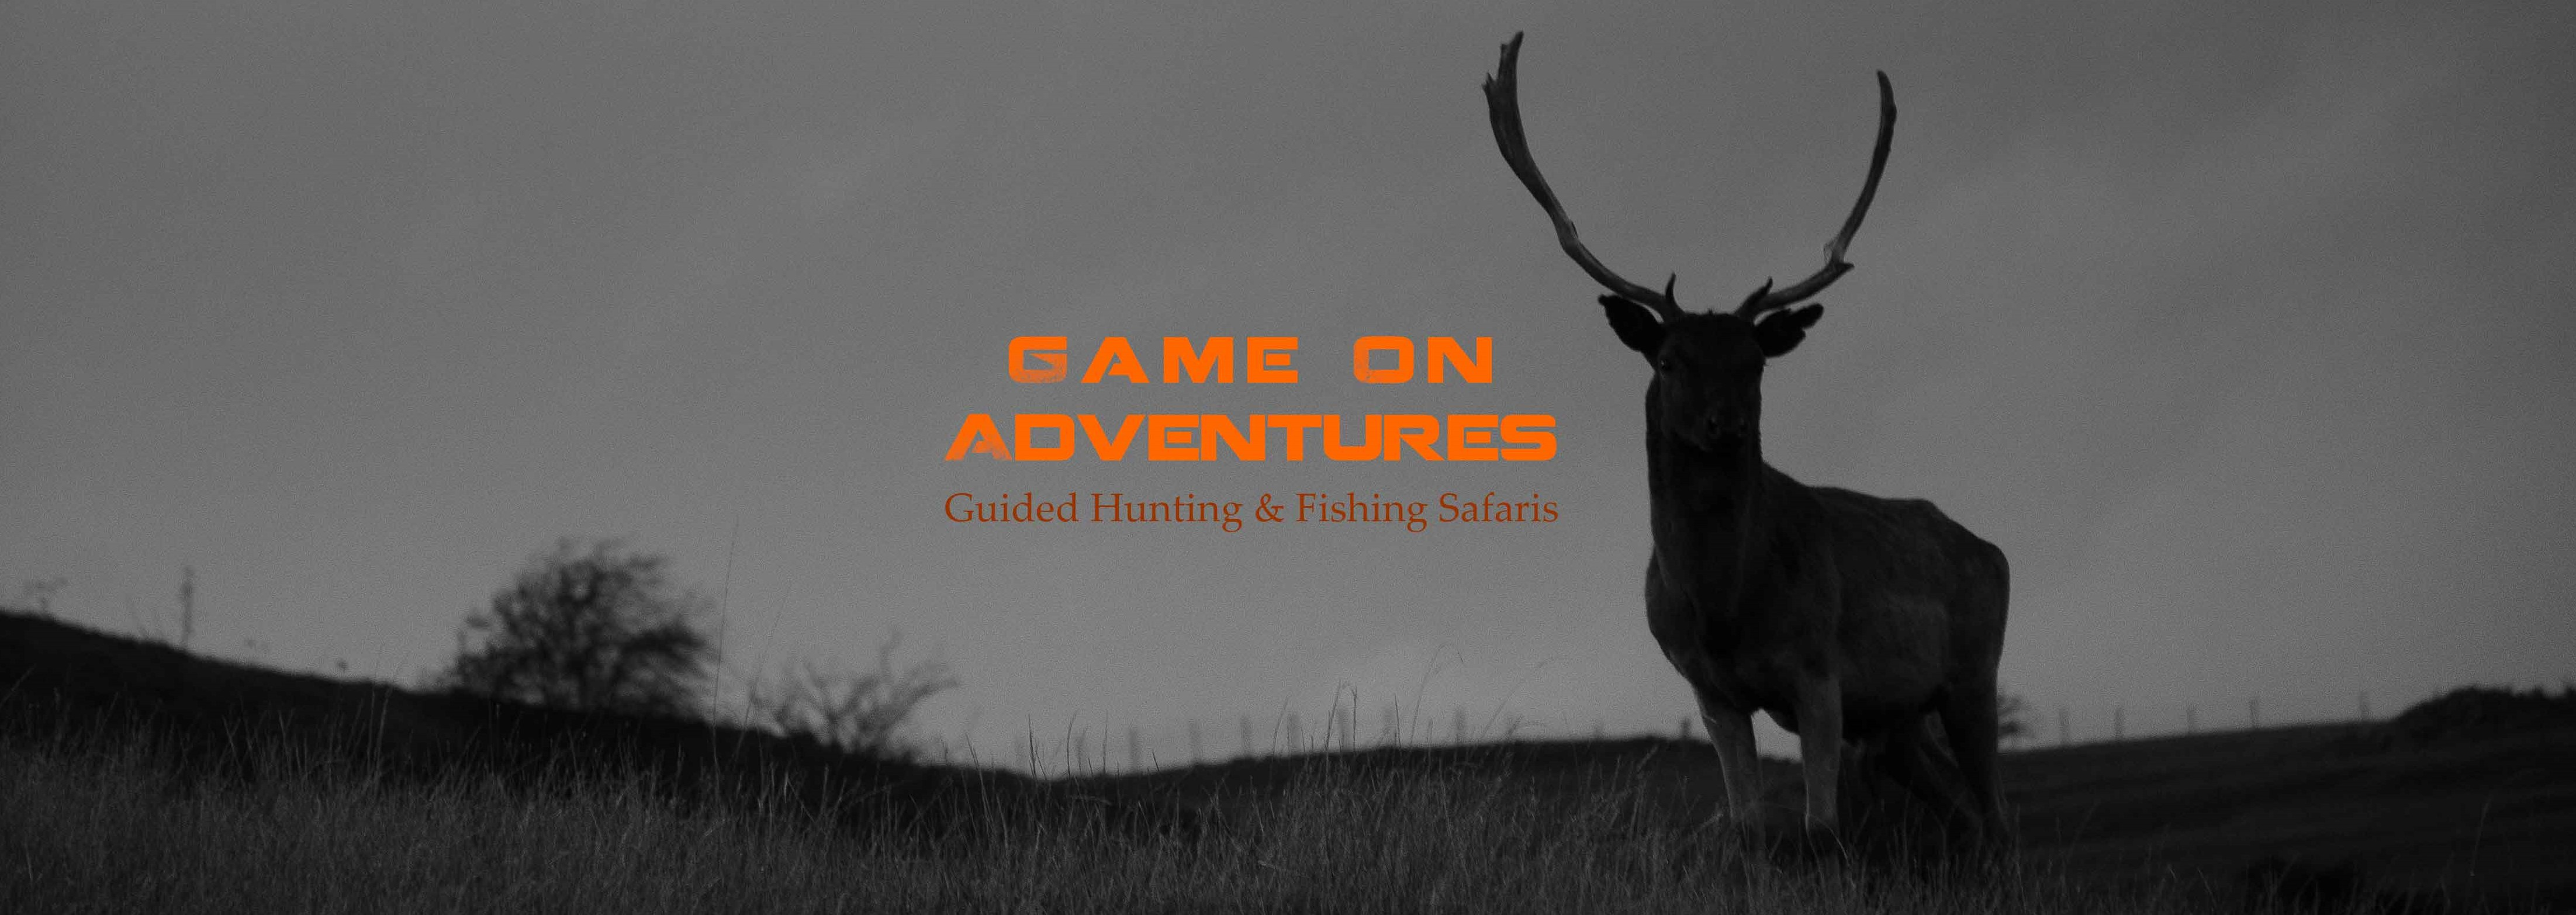 Game On Adventures